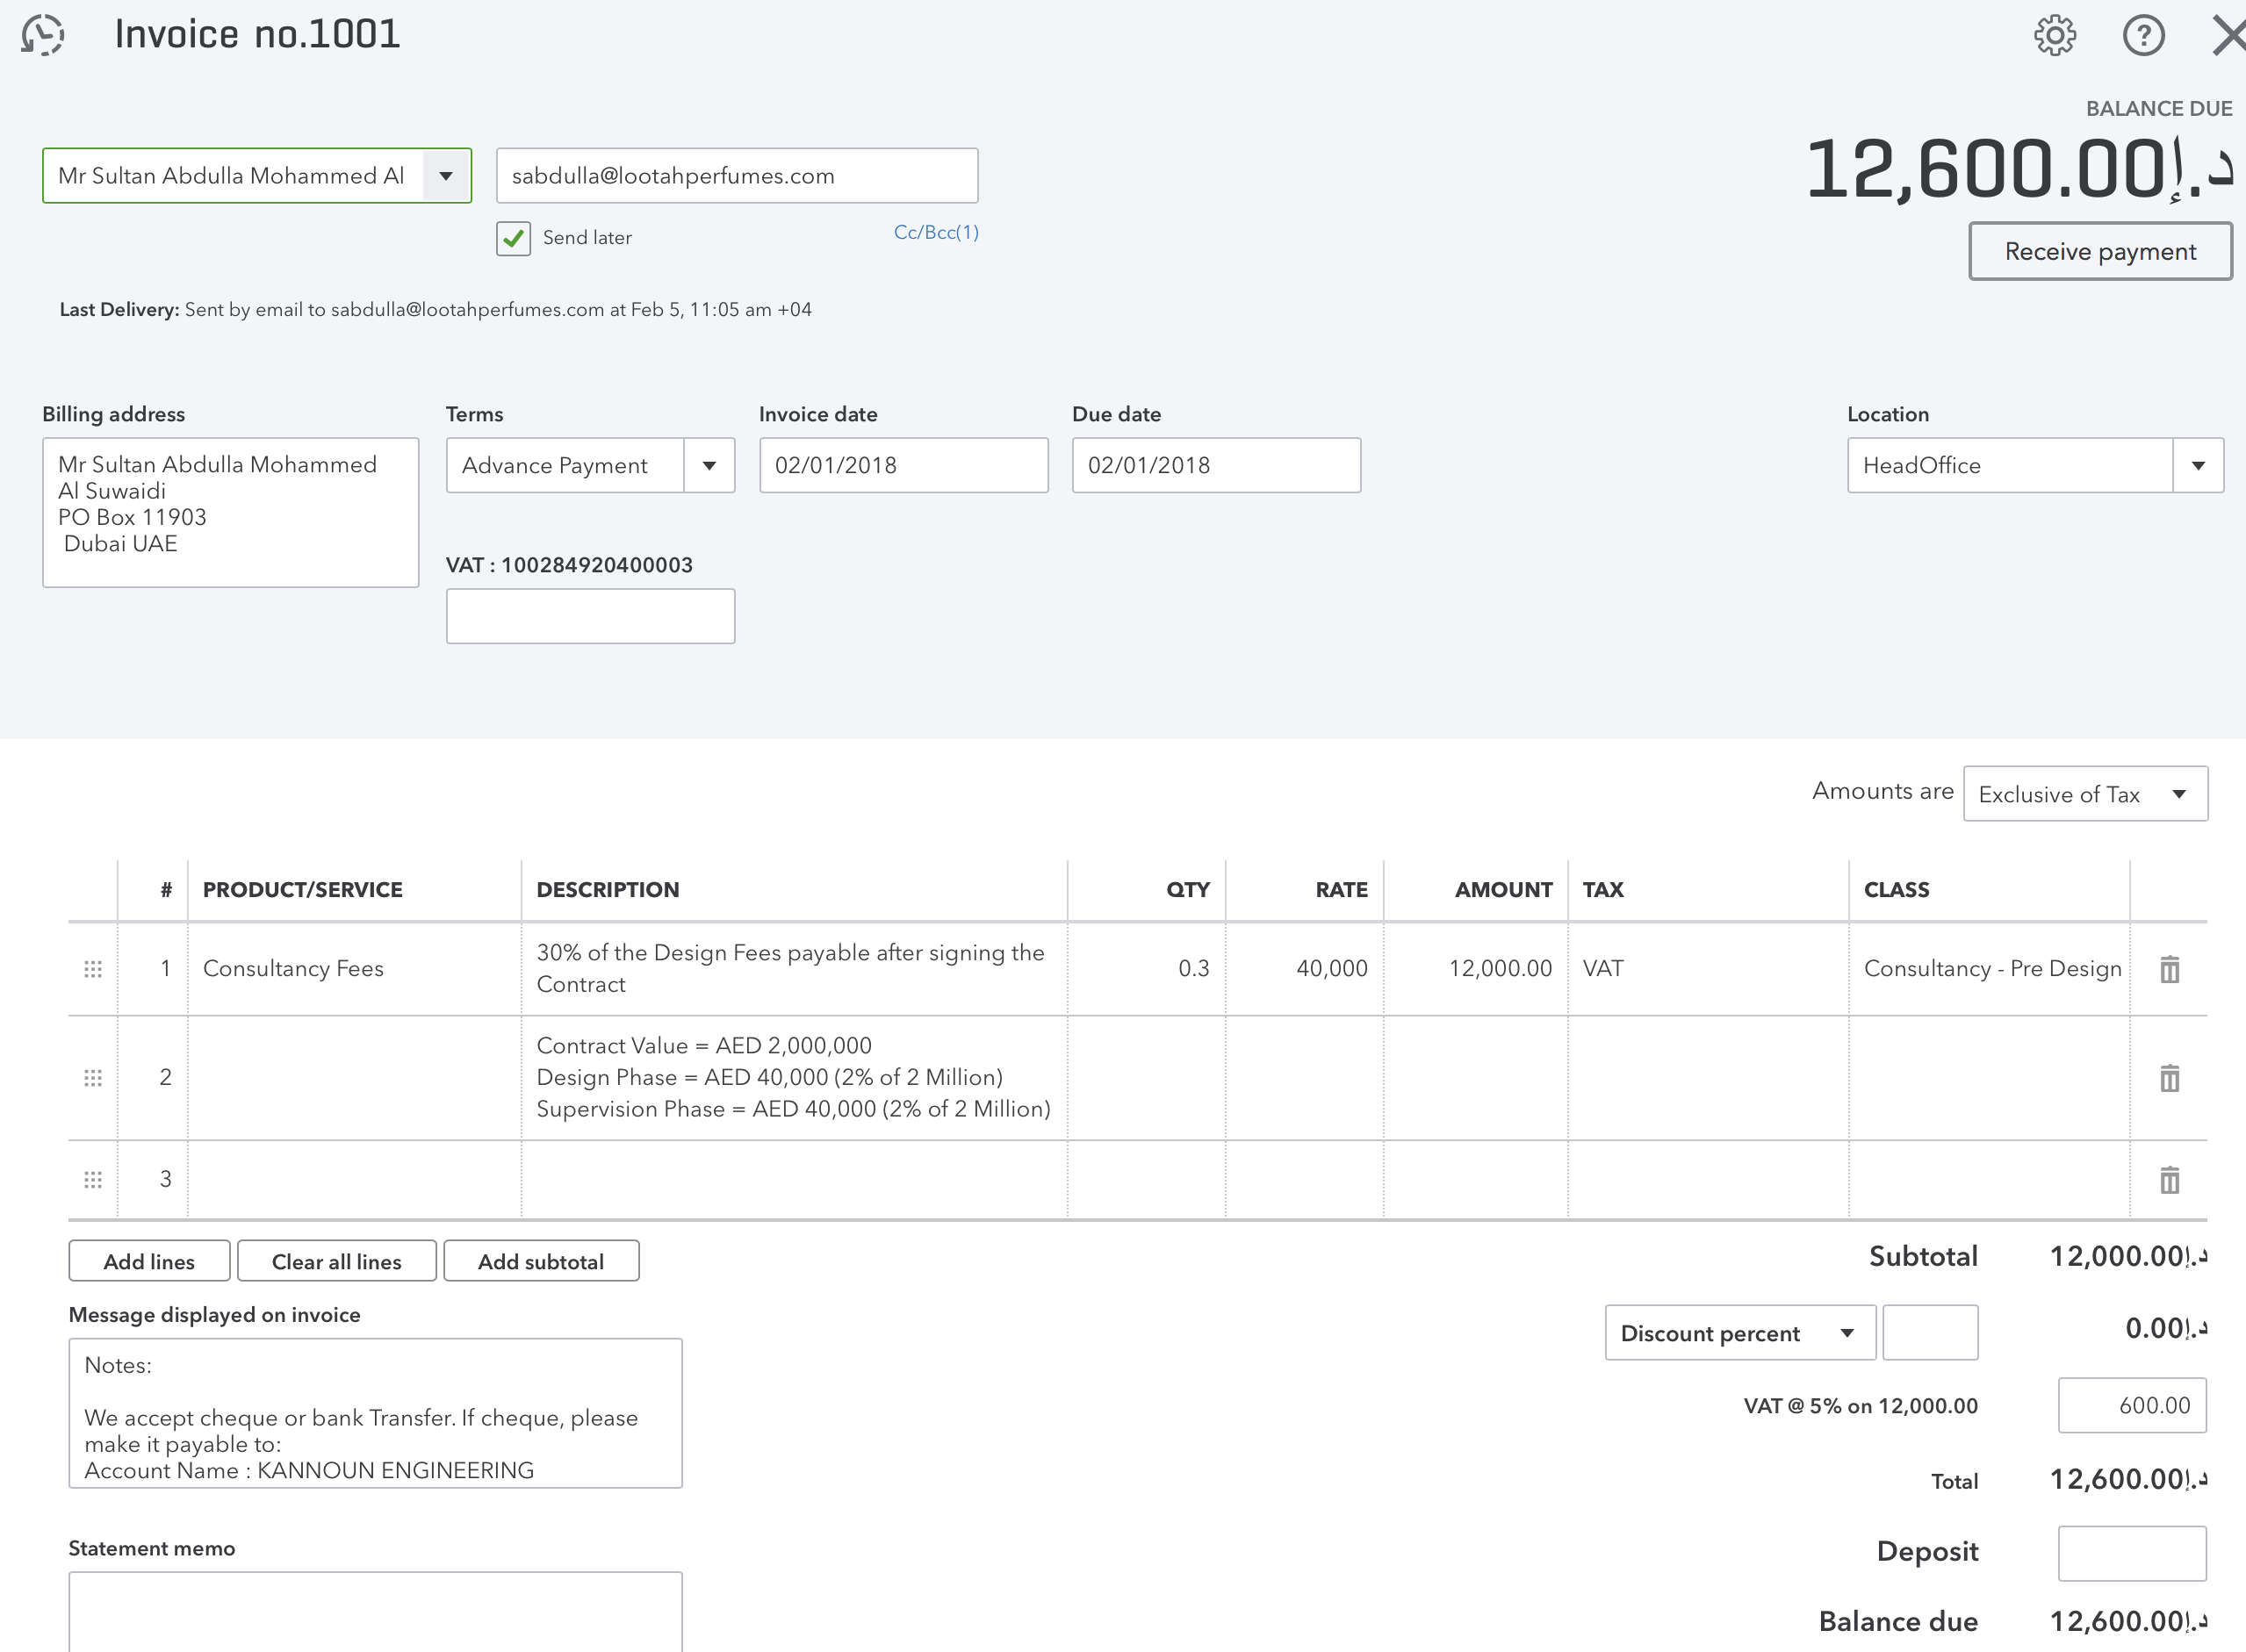 I Am Making Tax Invoice And Charging VAT On My Services Howeve - Create invoice in quickbooks online thrift store